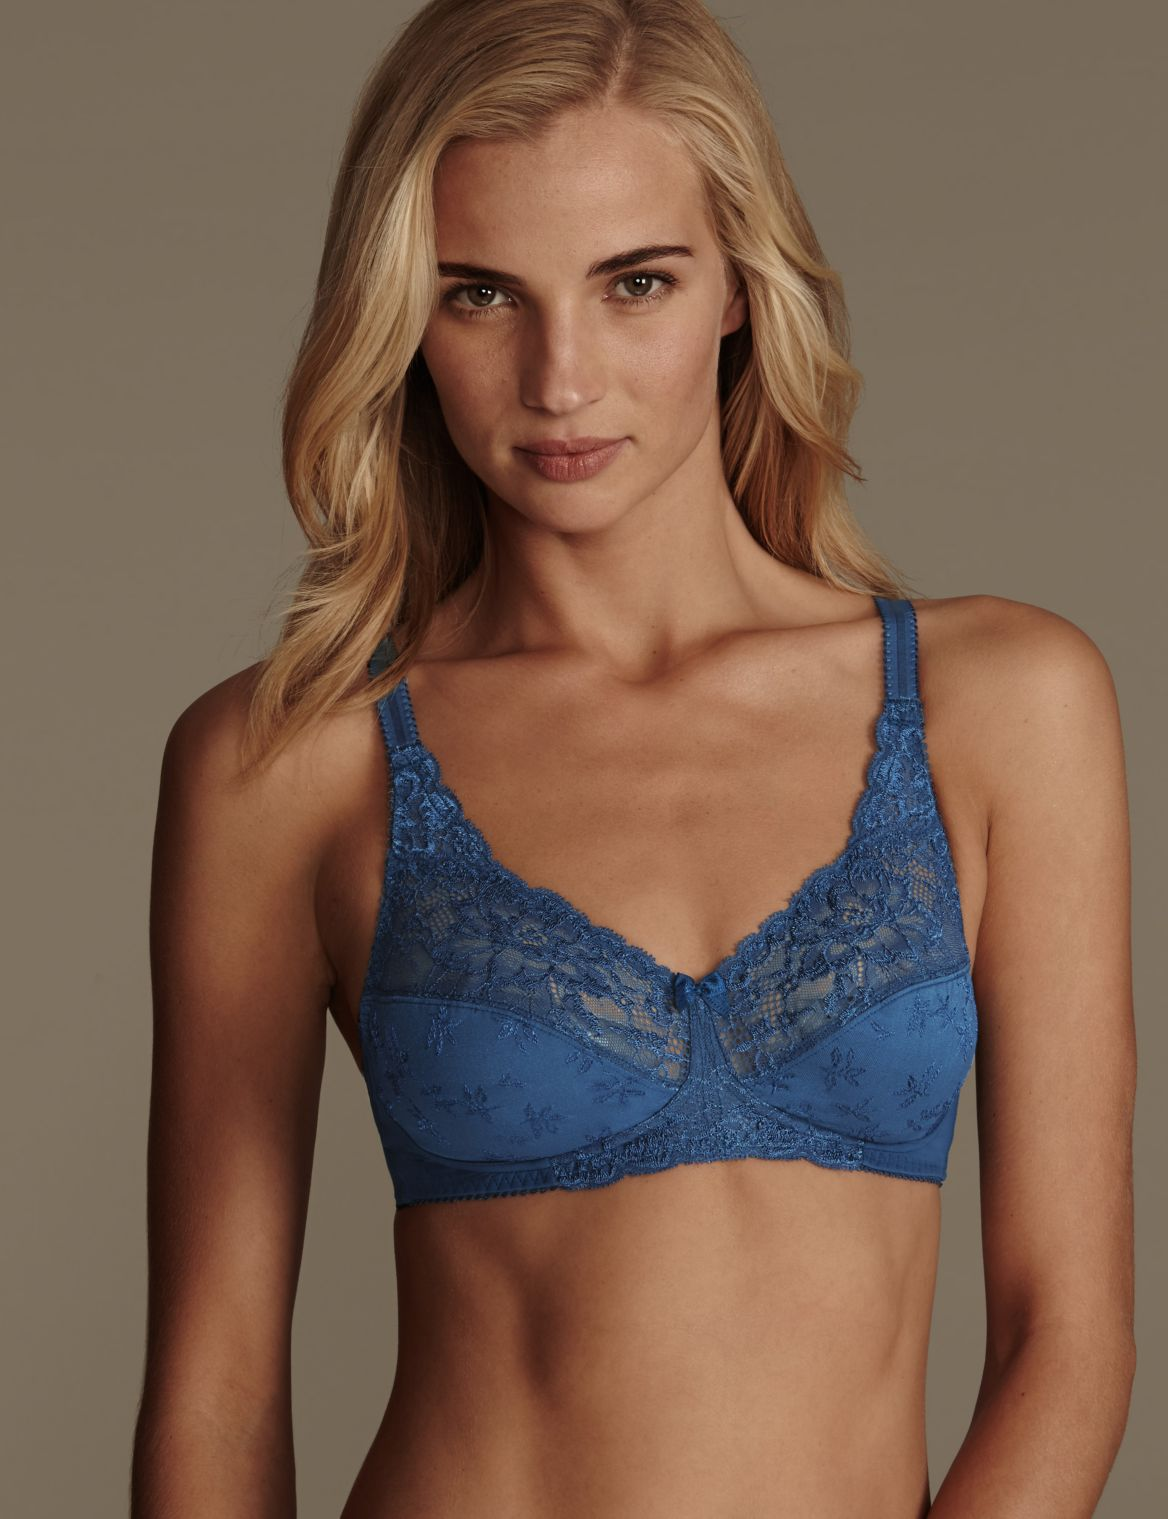 Floral Jacquard Lace Non-Wired Full Cup Bra A-DD dark petrol